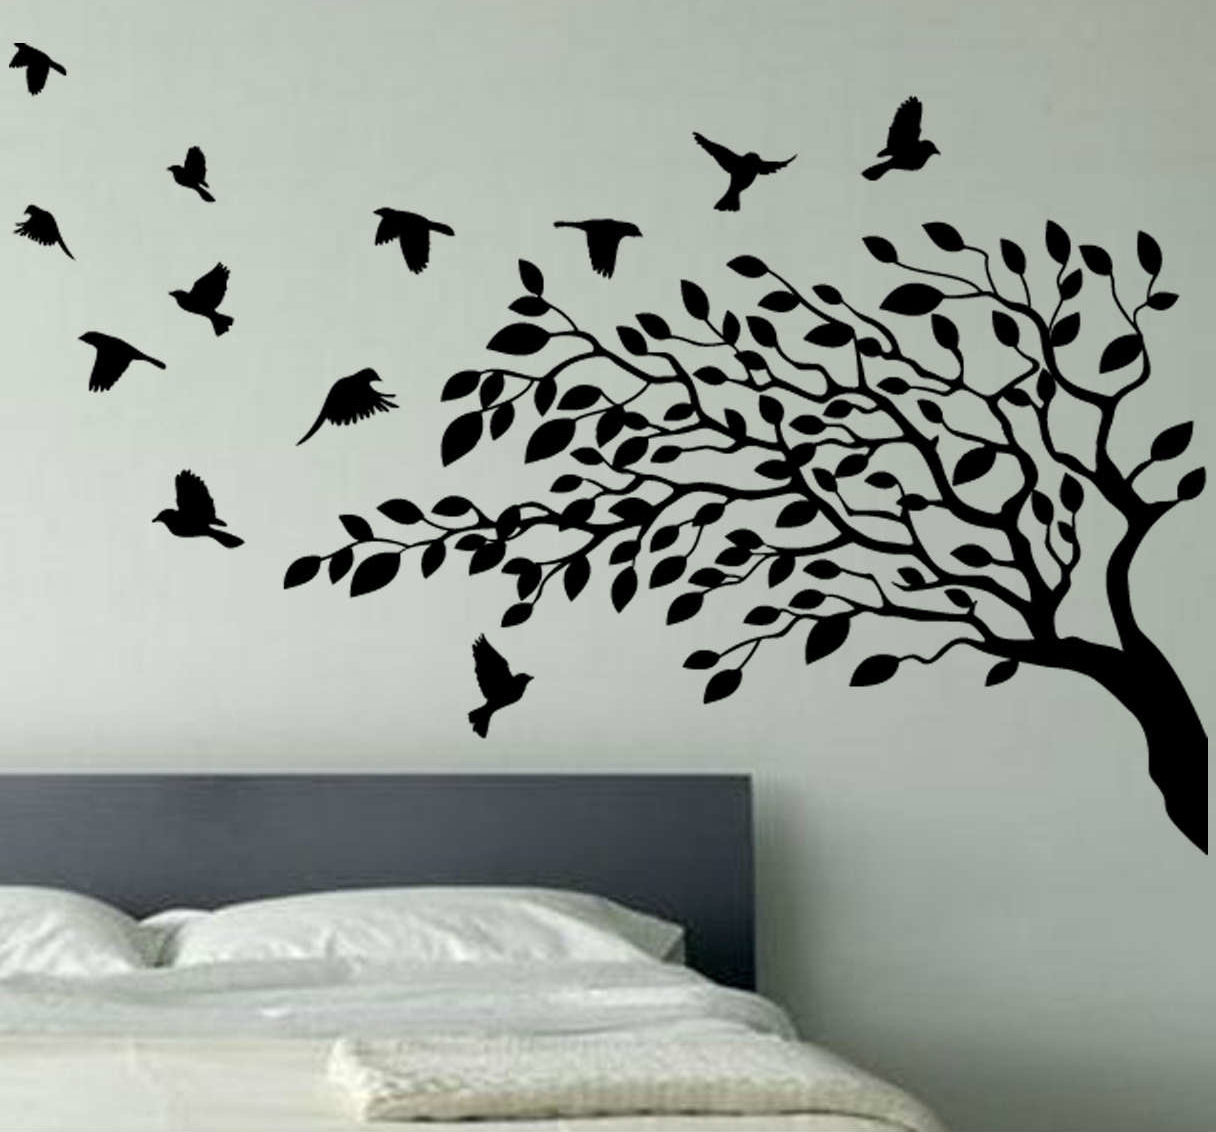 Wallpaper Wall Decals Stickers Art Vinyl Removable Birdcage Bird Within Famous Flock Of Birds Wall Art (View 13 of 15)